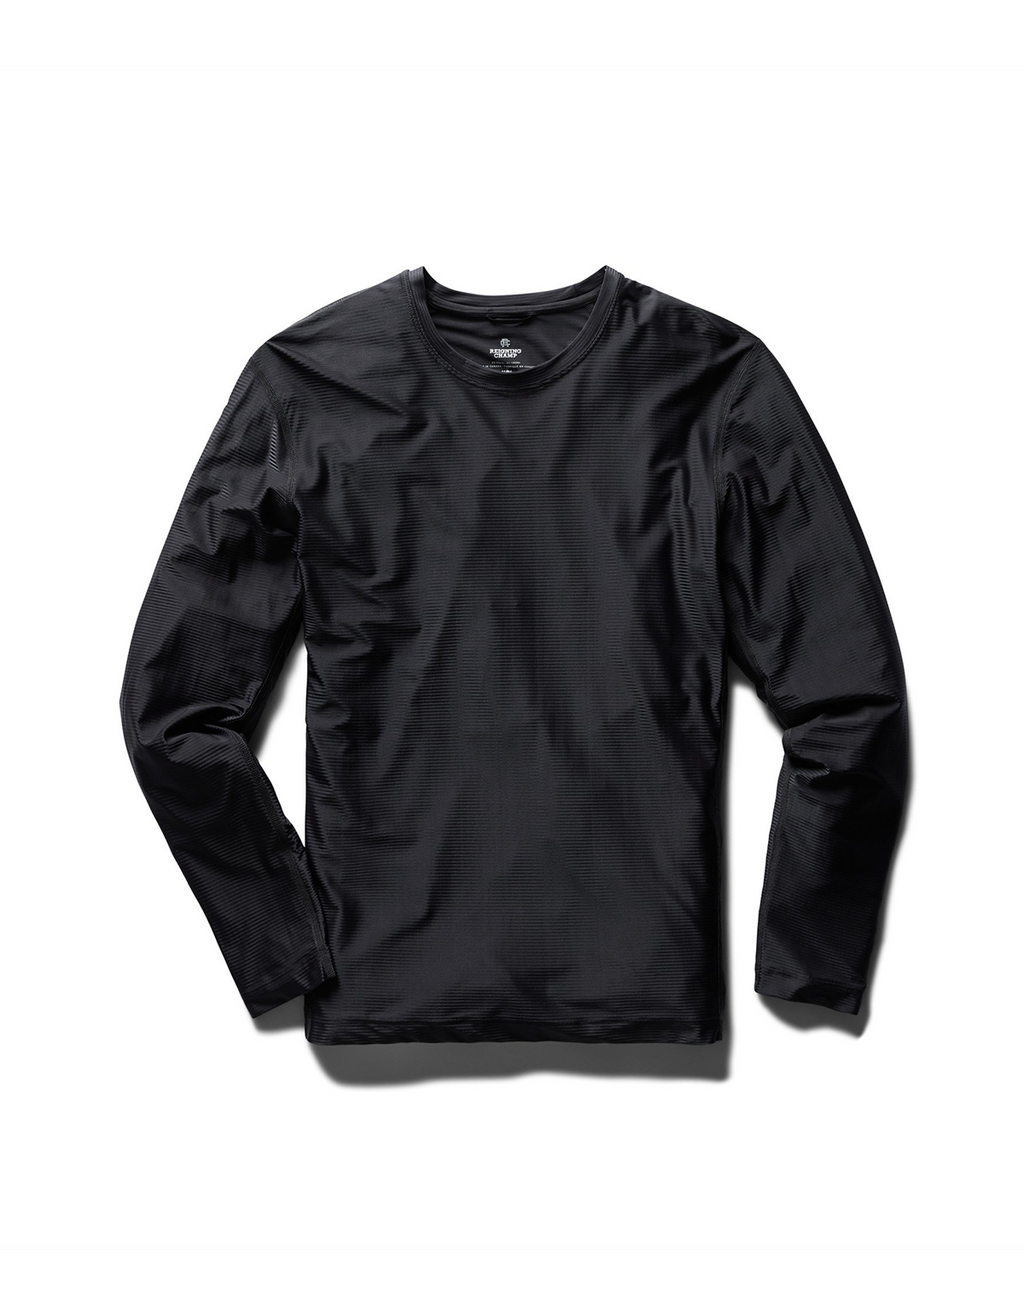 Schoeller E1 Long Sleeve / Black